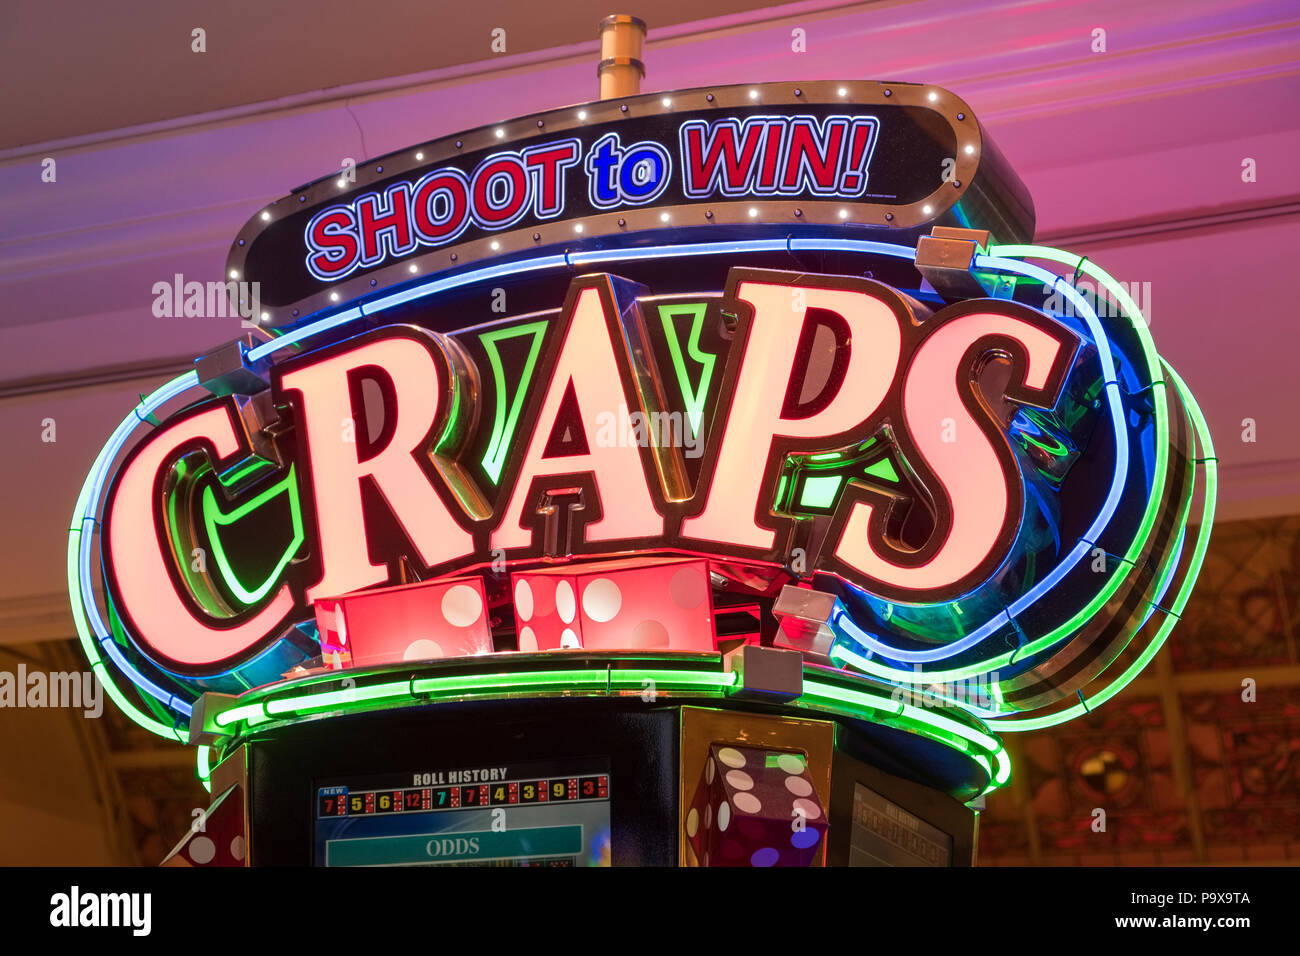 Craps machine neon sign in a Las Vegas casino, Nevada, USA - Stock Image